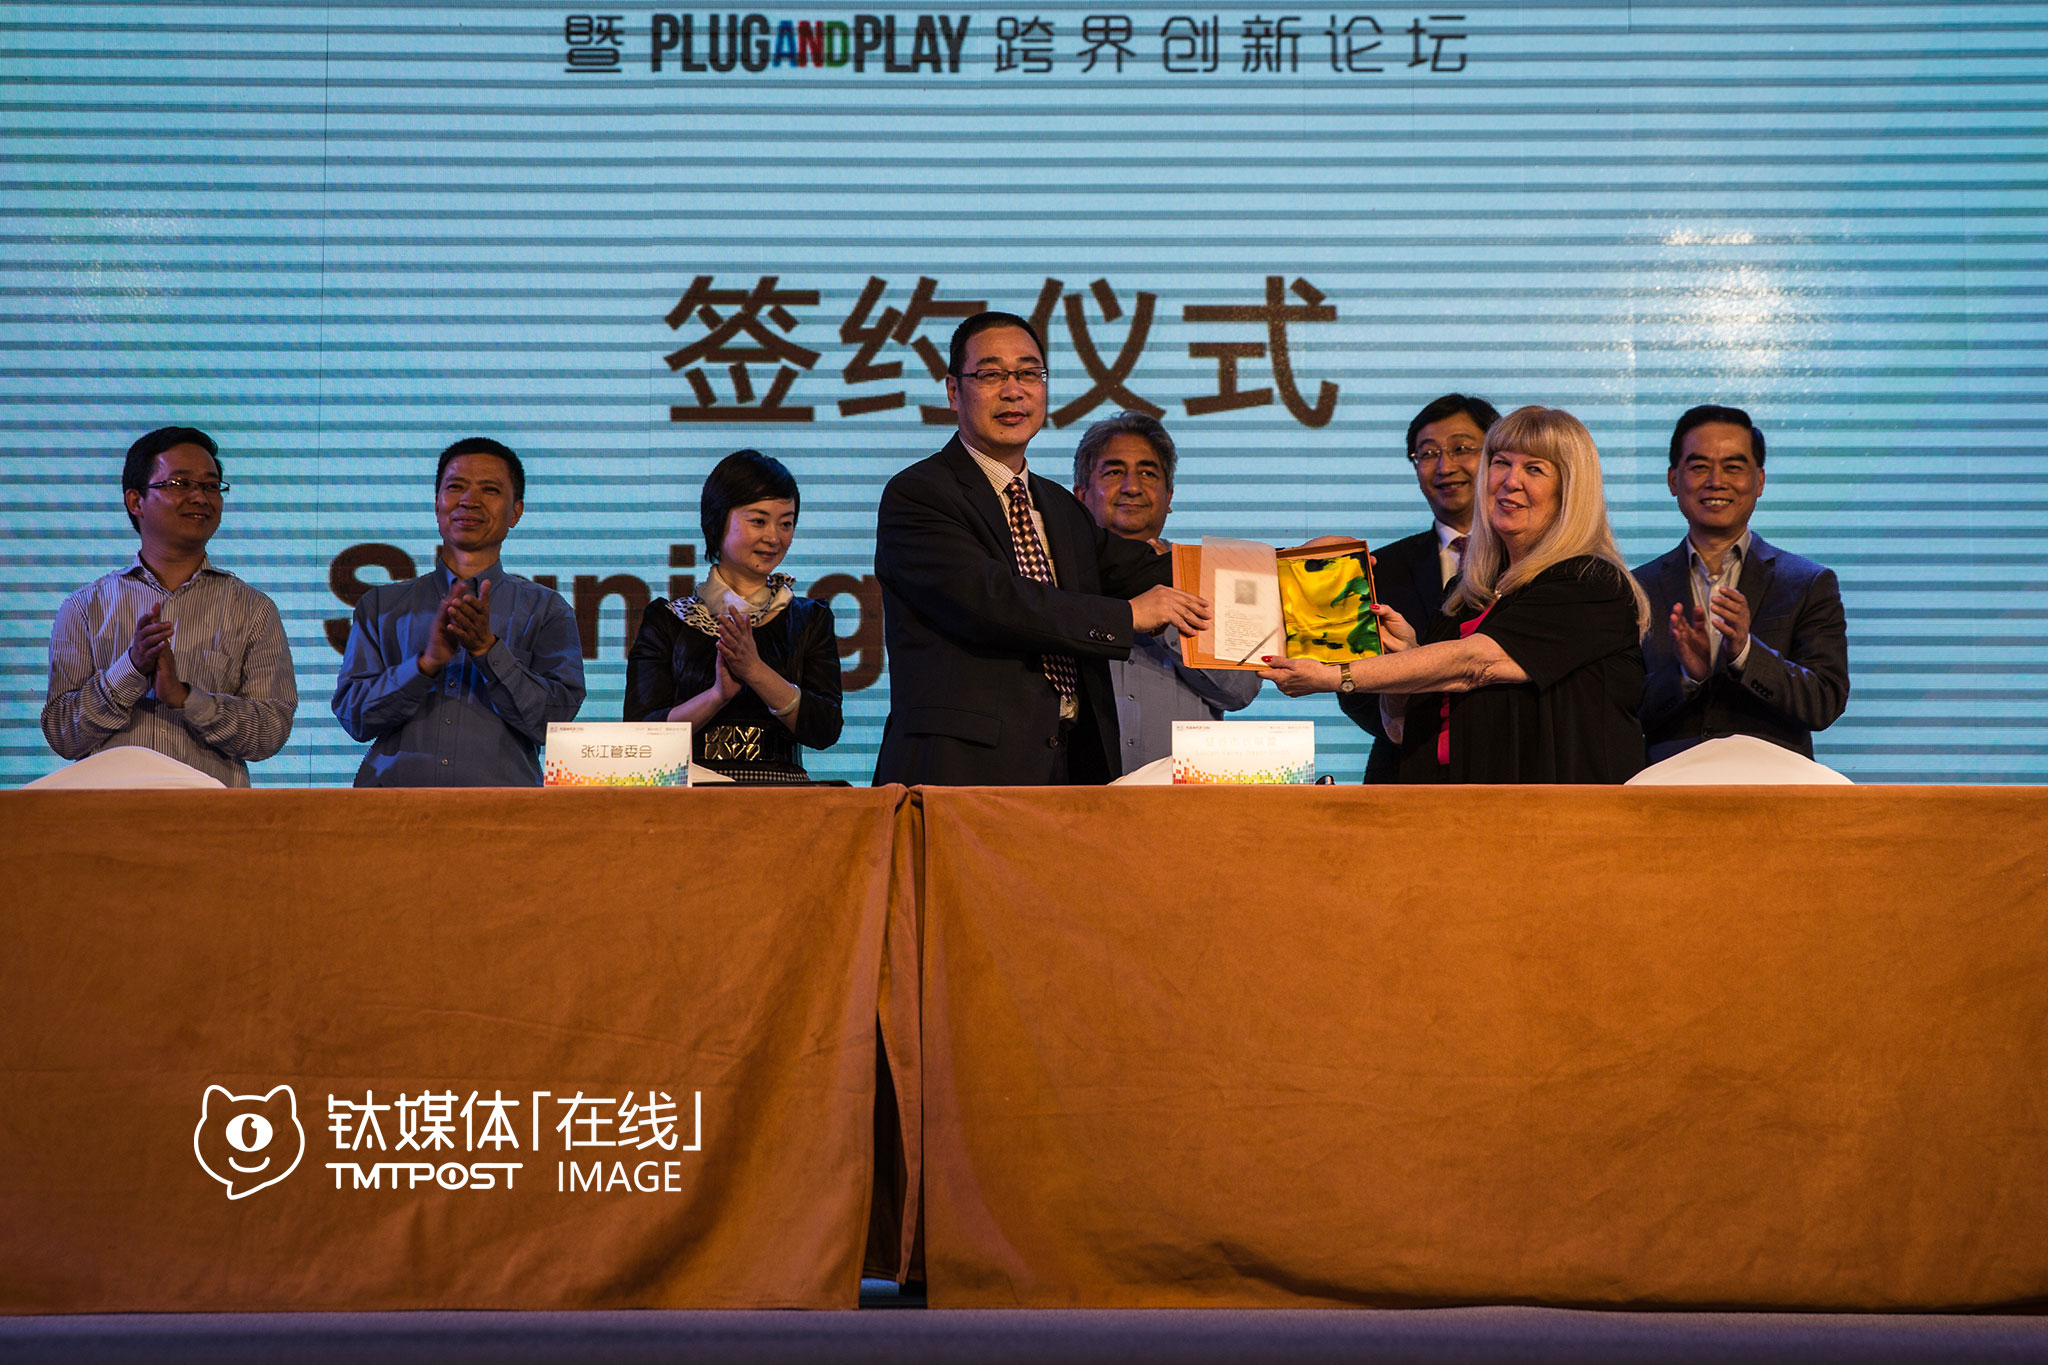 At another innovation summit in Shanghai, members of the management committee of Zhangjiang Hi-Tech Park and Silicon Valley mayors exchanged gifts. The delegation chose a map of Silicon Valley signed by all the mayors as gift, while China gave a fined silk product in return.